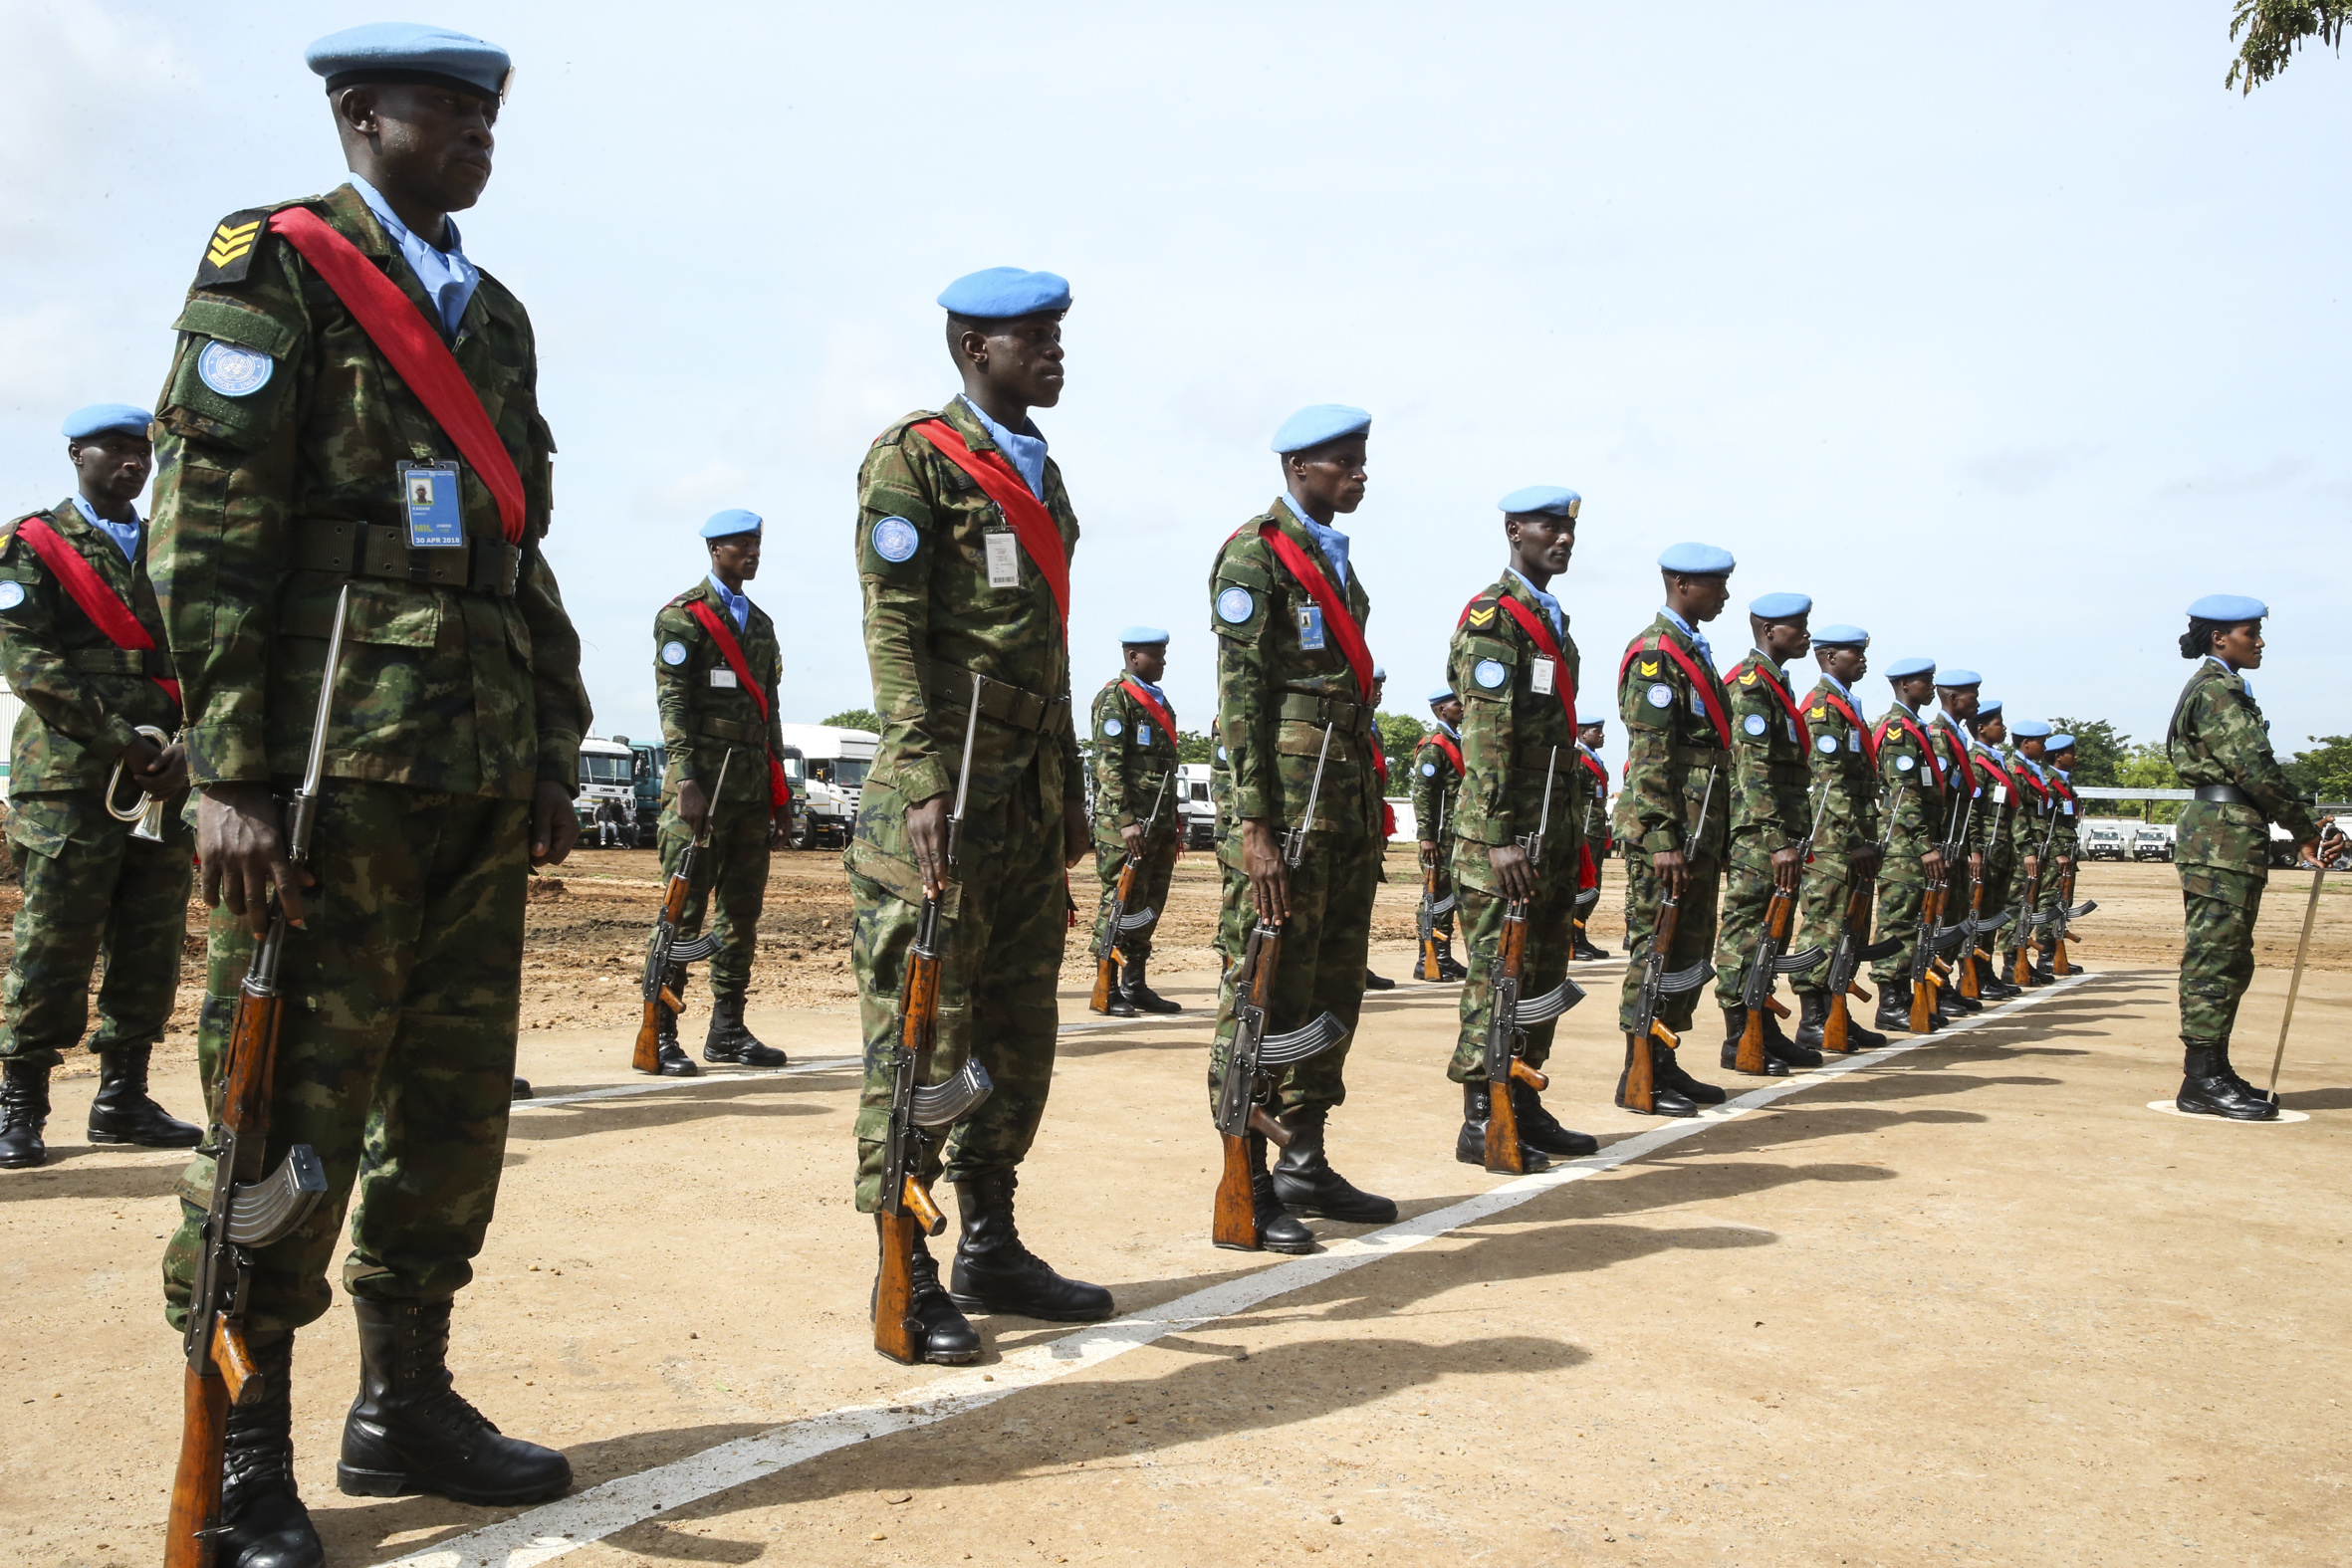 UN Peacekeeping Is Stymied by Serious Contradictions. They Need to Be Resolved